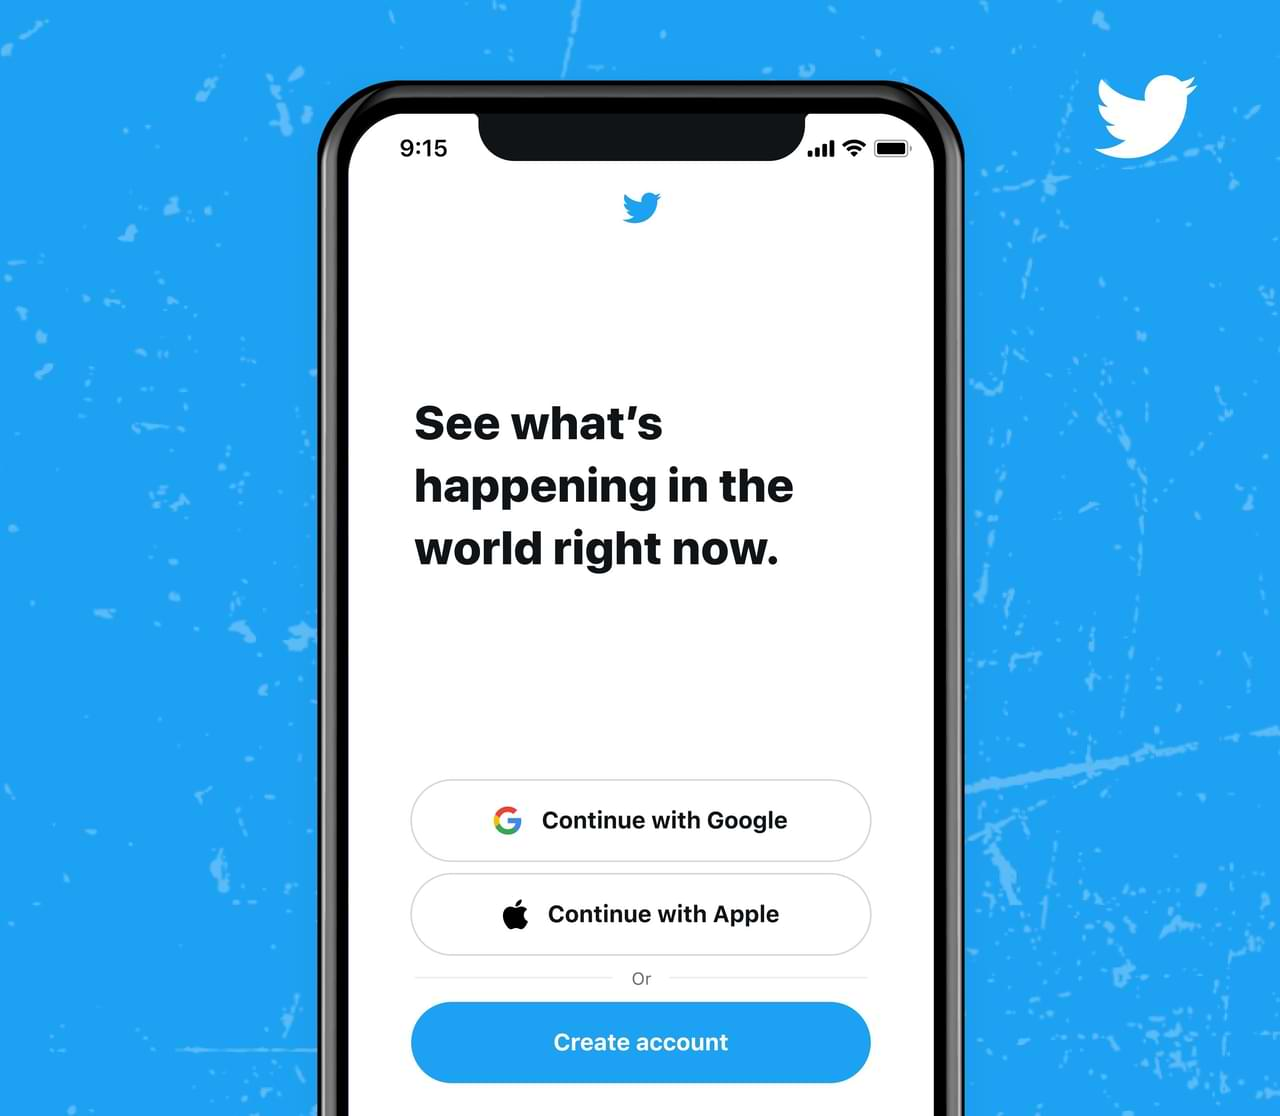 Starting Today, Log In to Twitter Can Already Use Google or Apple Accounts